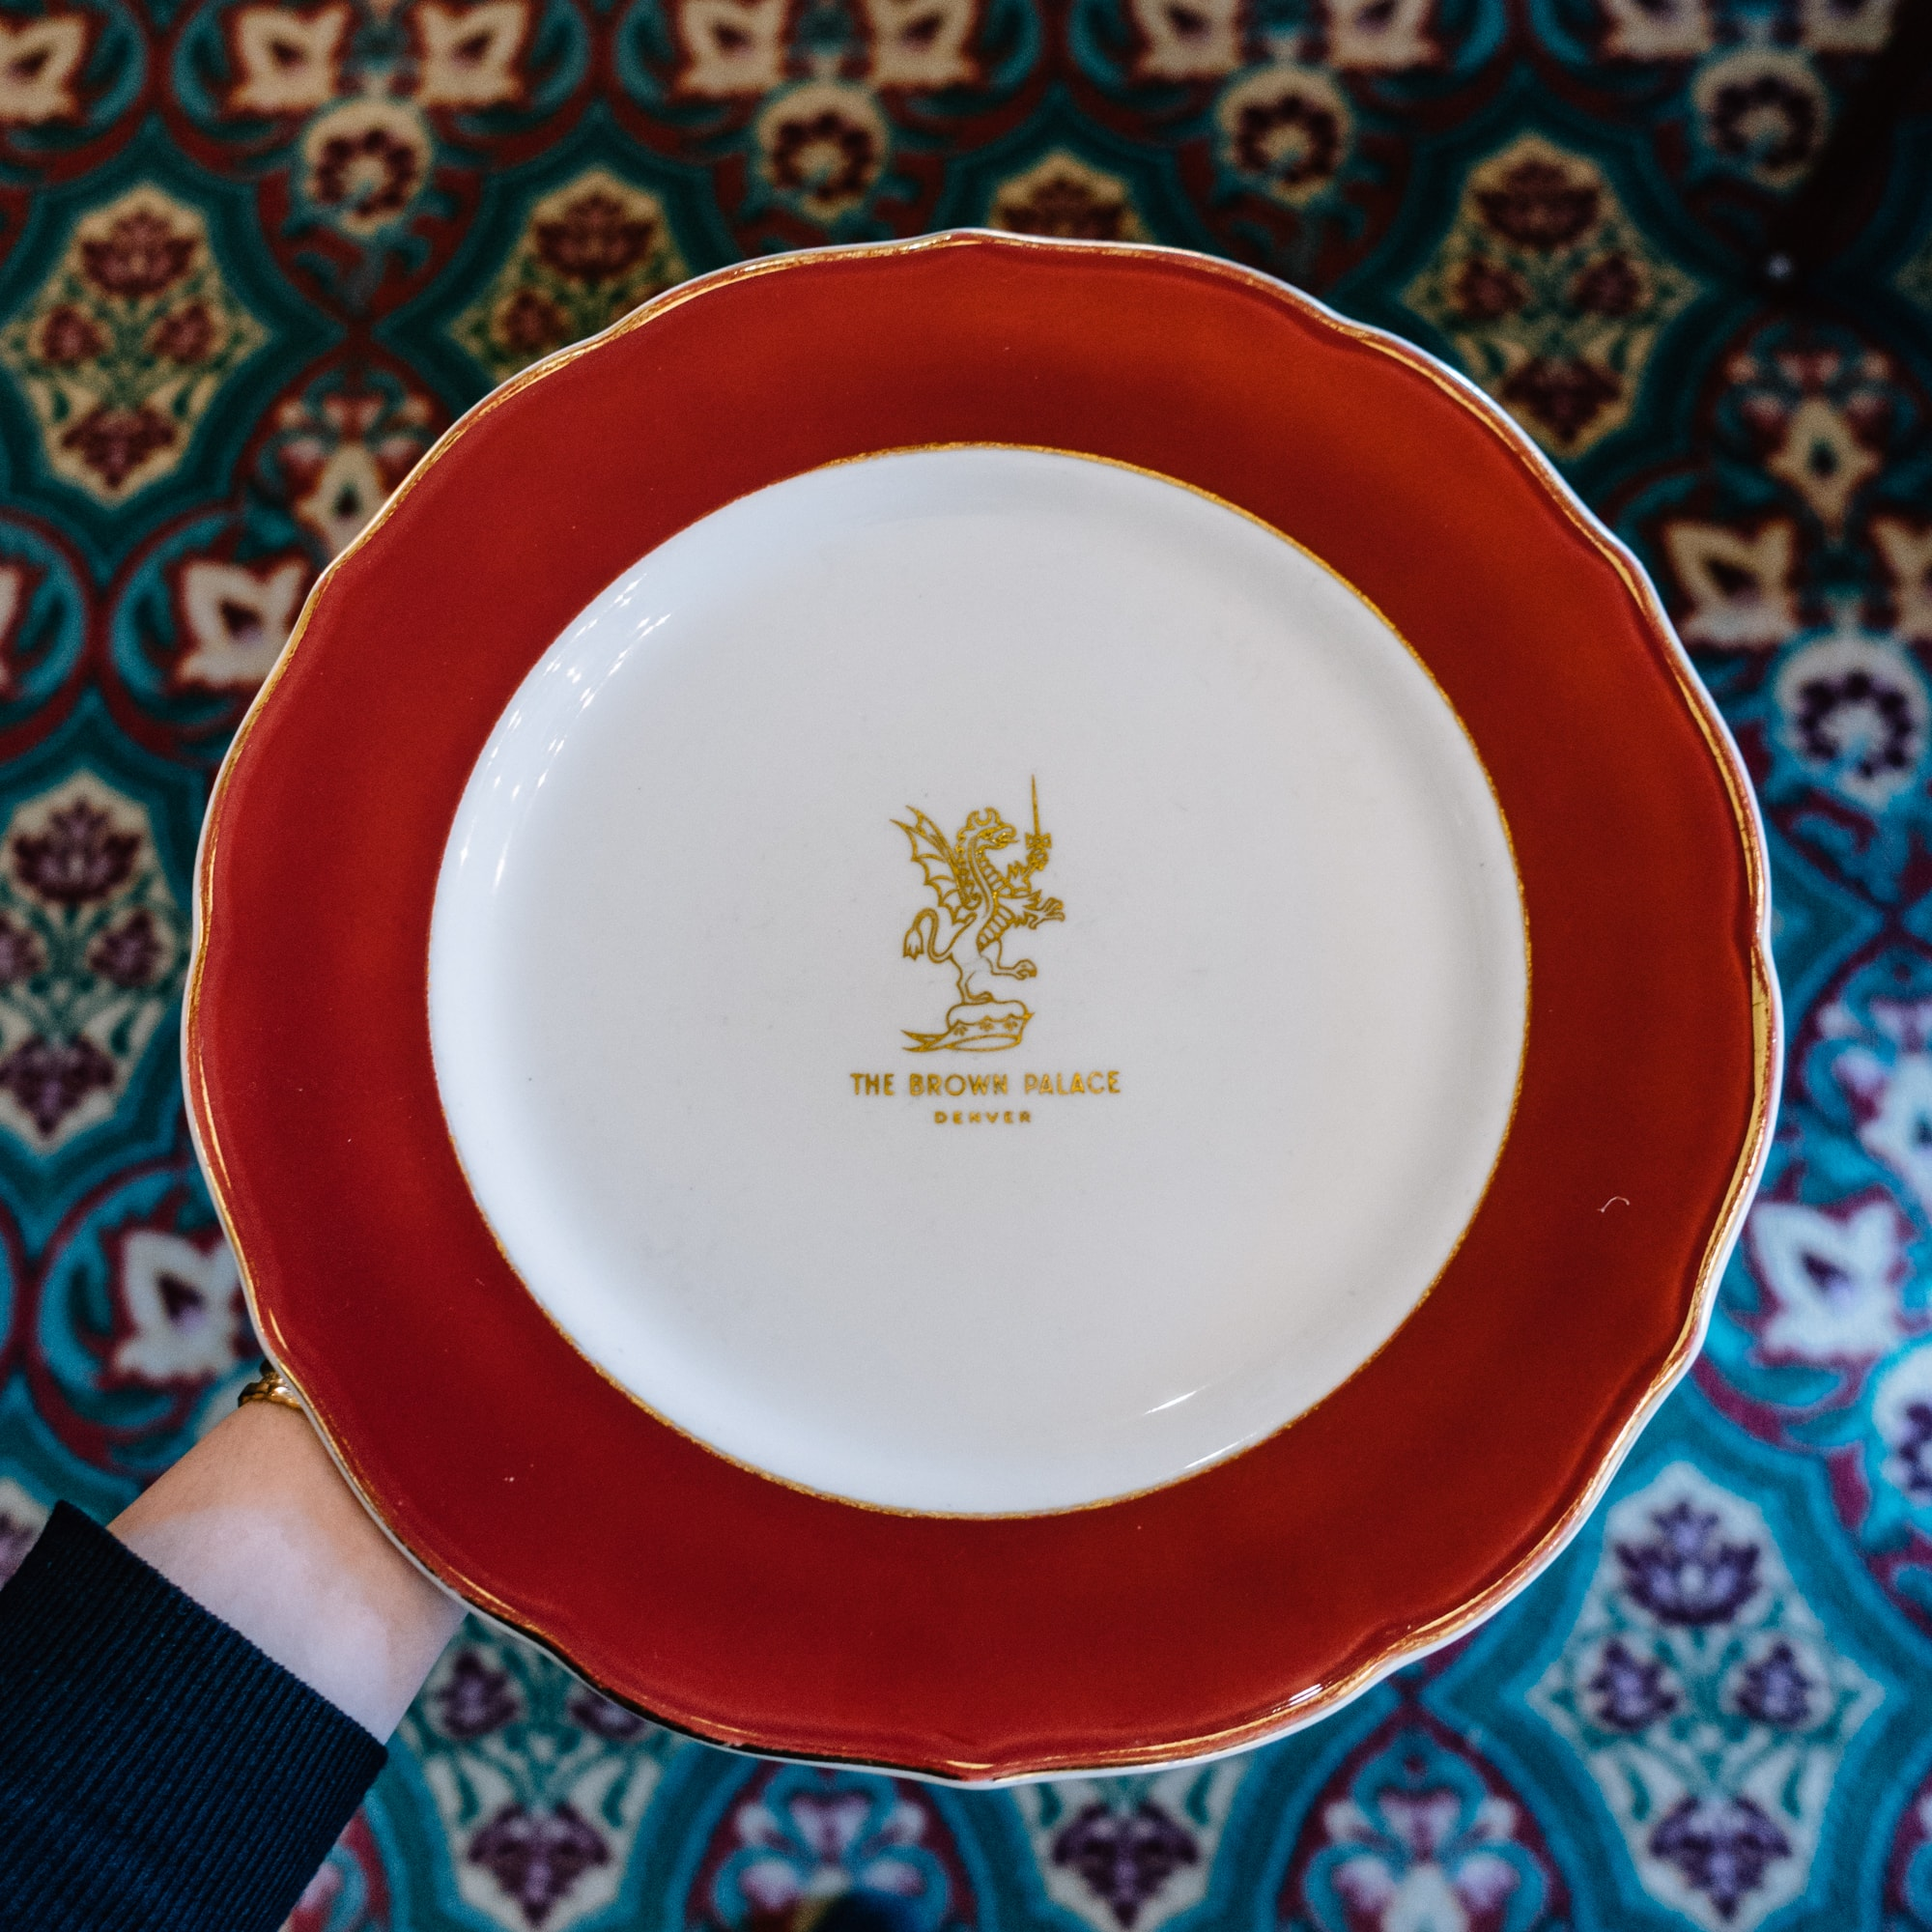 Monogrammed Brown Palace plate